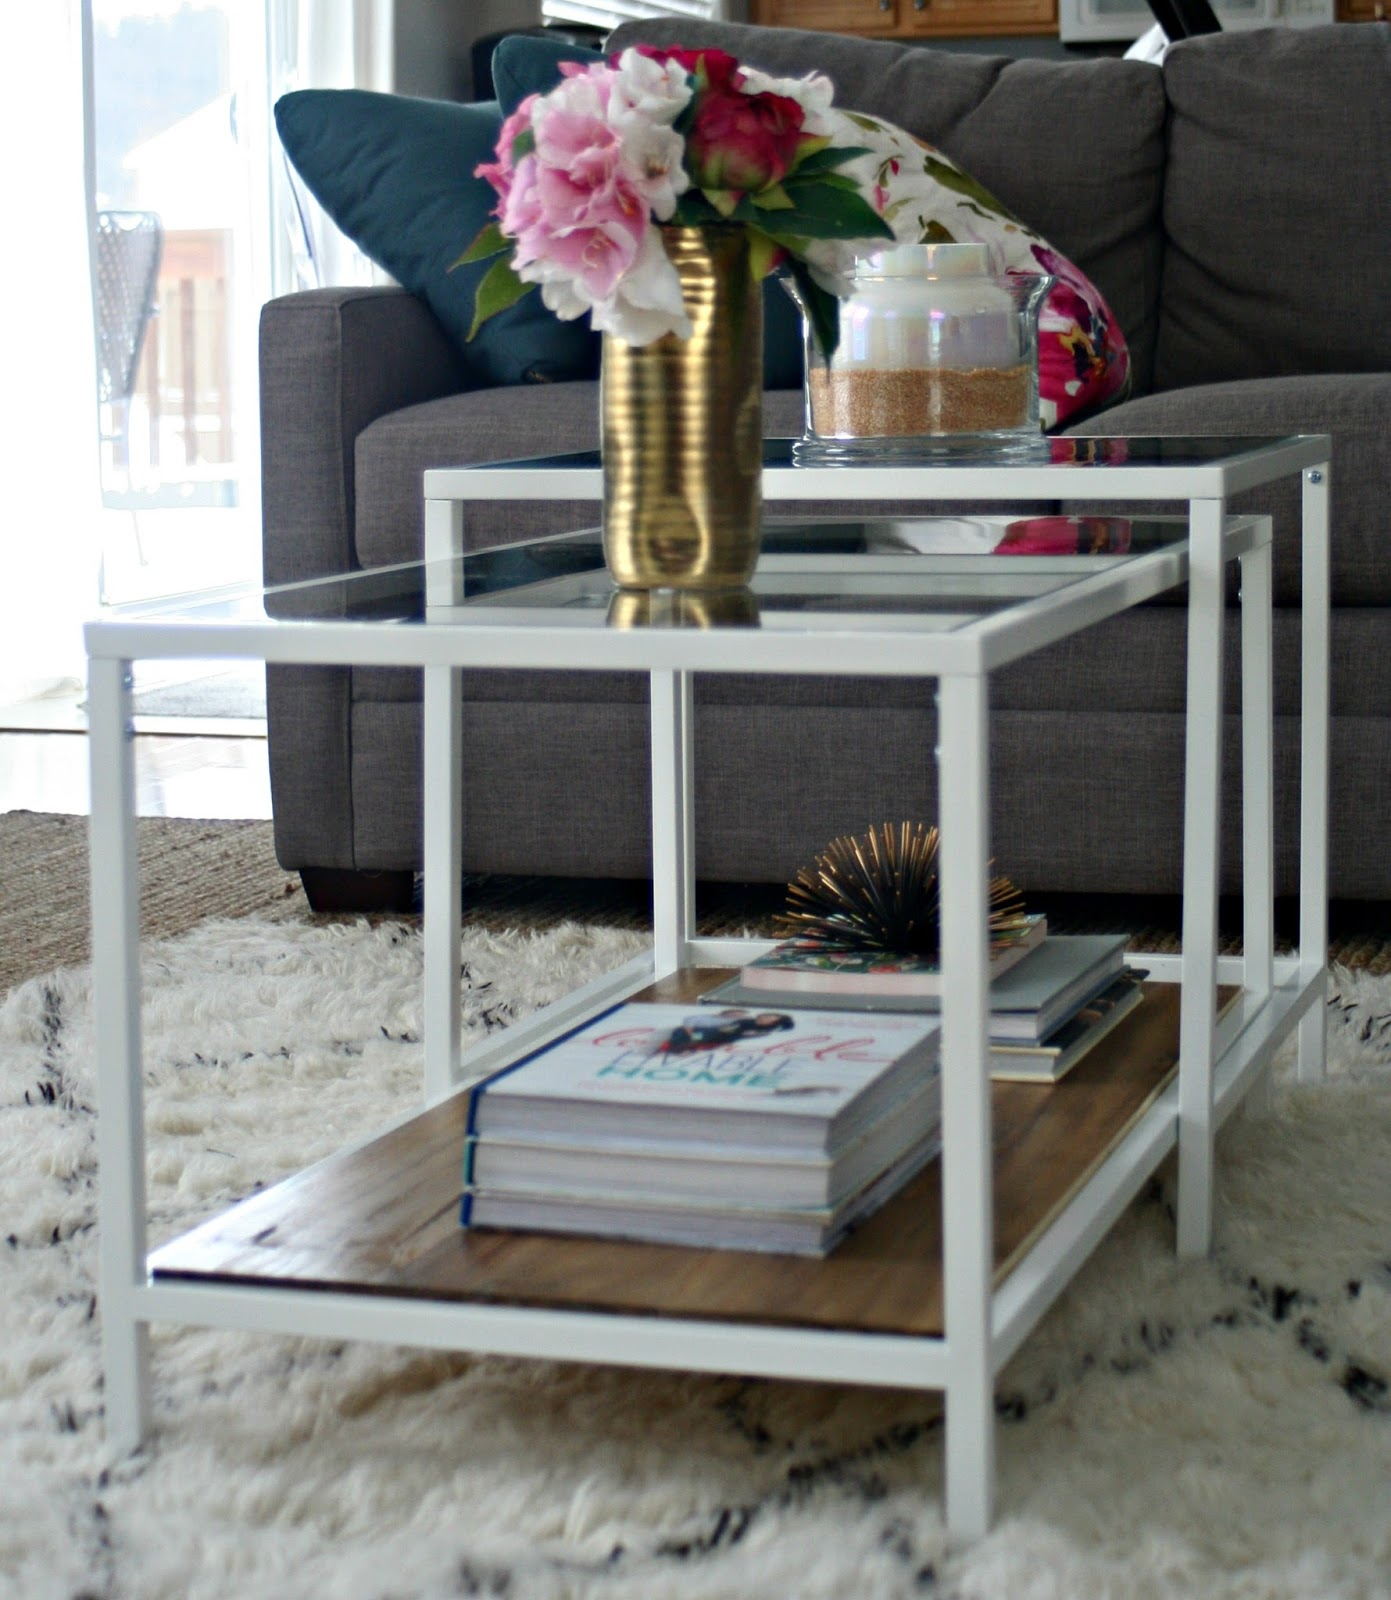 Ikea Vittsjo Coffee Table Ikea Restyle: Vittsjo Hack | Restyle It Wright